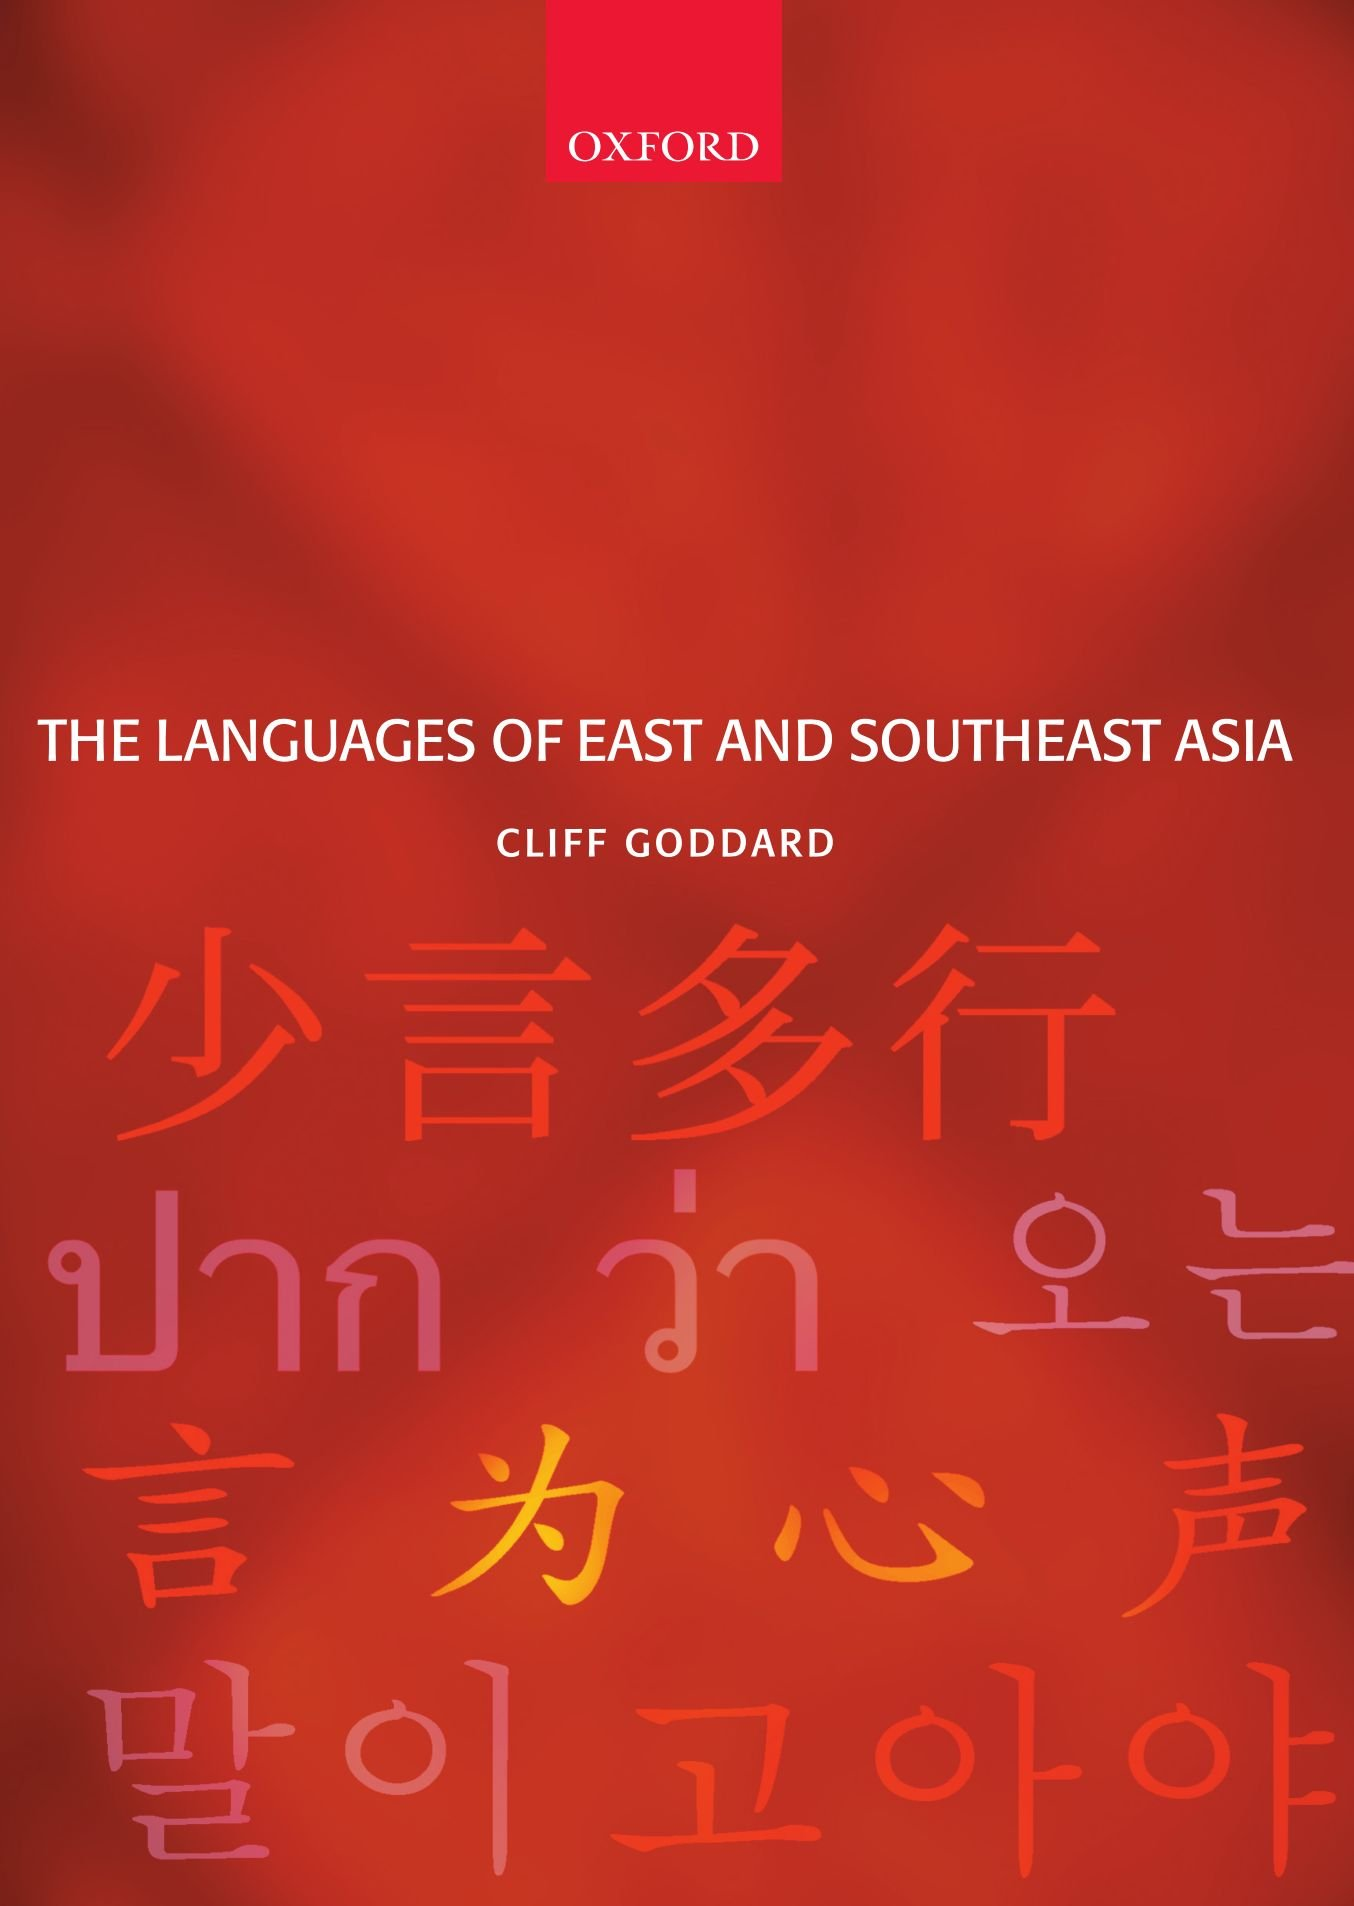 The Languages of East and Southeast Asia: An Introduction by Oxford University Press